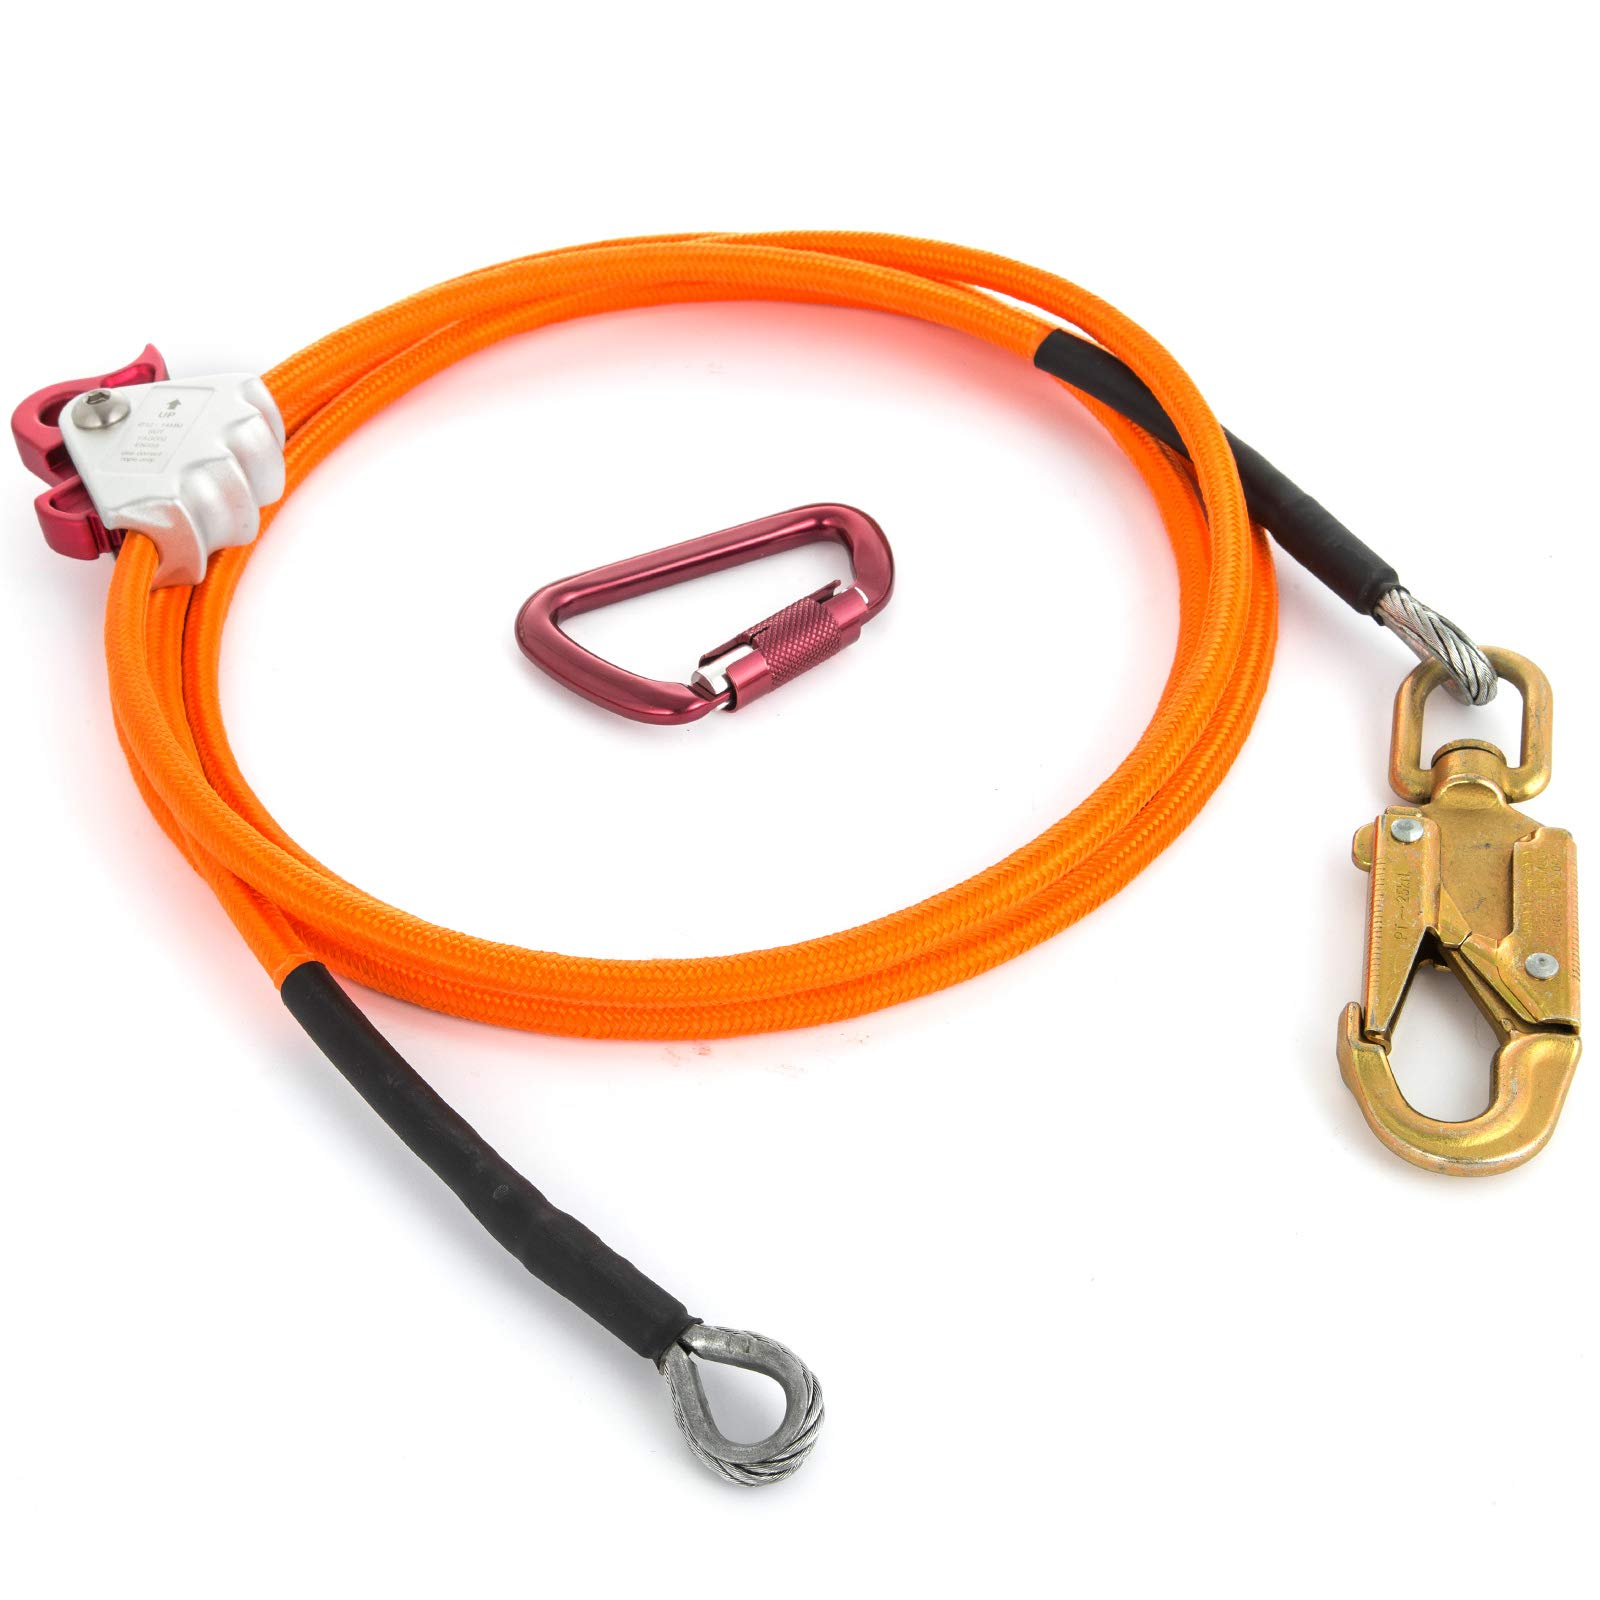 Happybuy Steel Wire Core Flip Line Kit 1/2'' X 8' Wire Core Flipline with Triple Lock Carabiner and Steel Swivel Snap Wire Core Flipline System for Arborists Climbers Tree Climbers (1/2'' X 8') by Happybuy (Image #4)